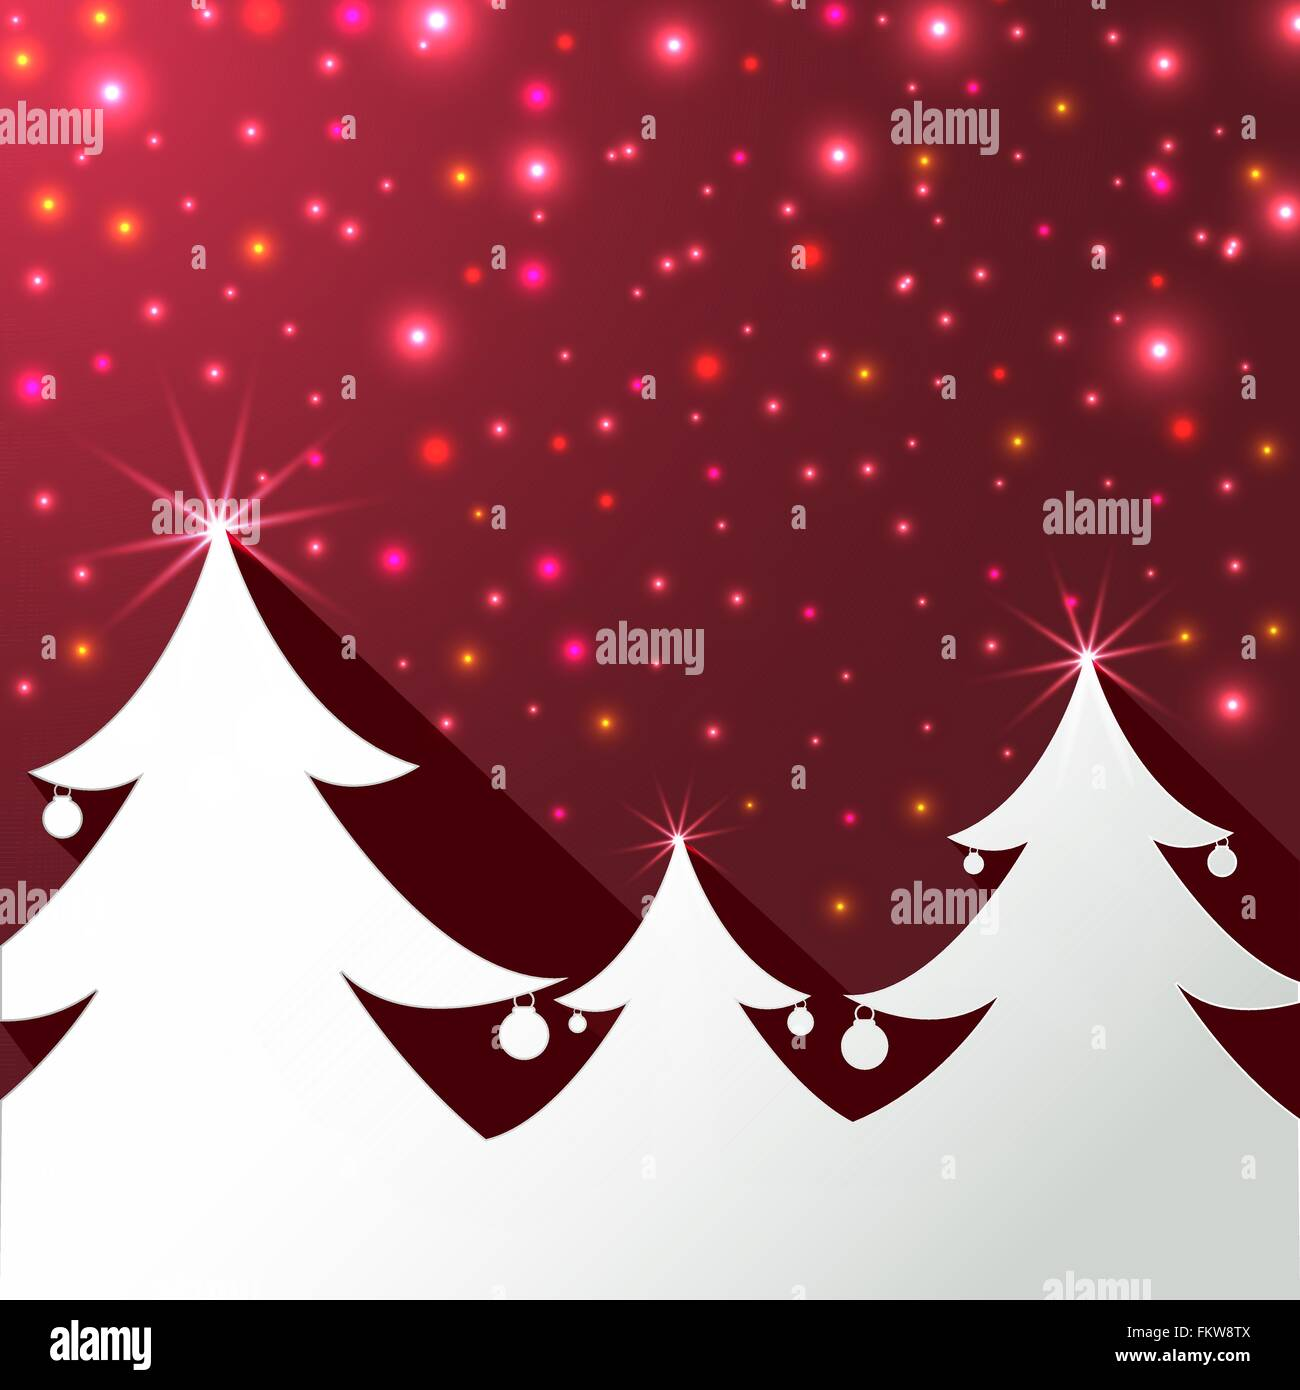 Christmas trees shape on red magical greeting card stock vector art christmas trees shape on red magical greeting card kristyandbryce Images